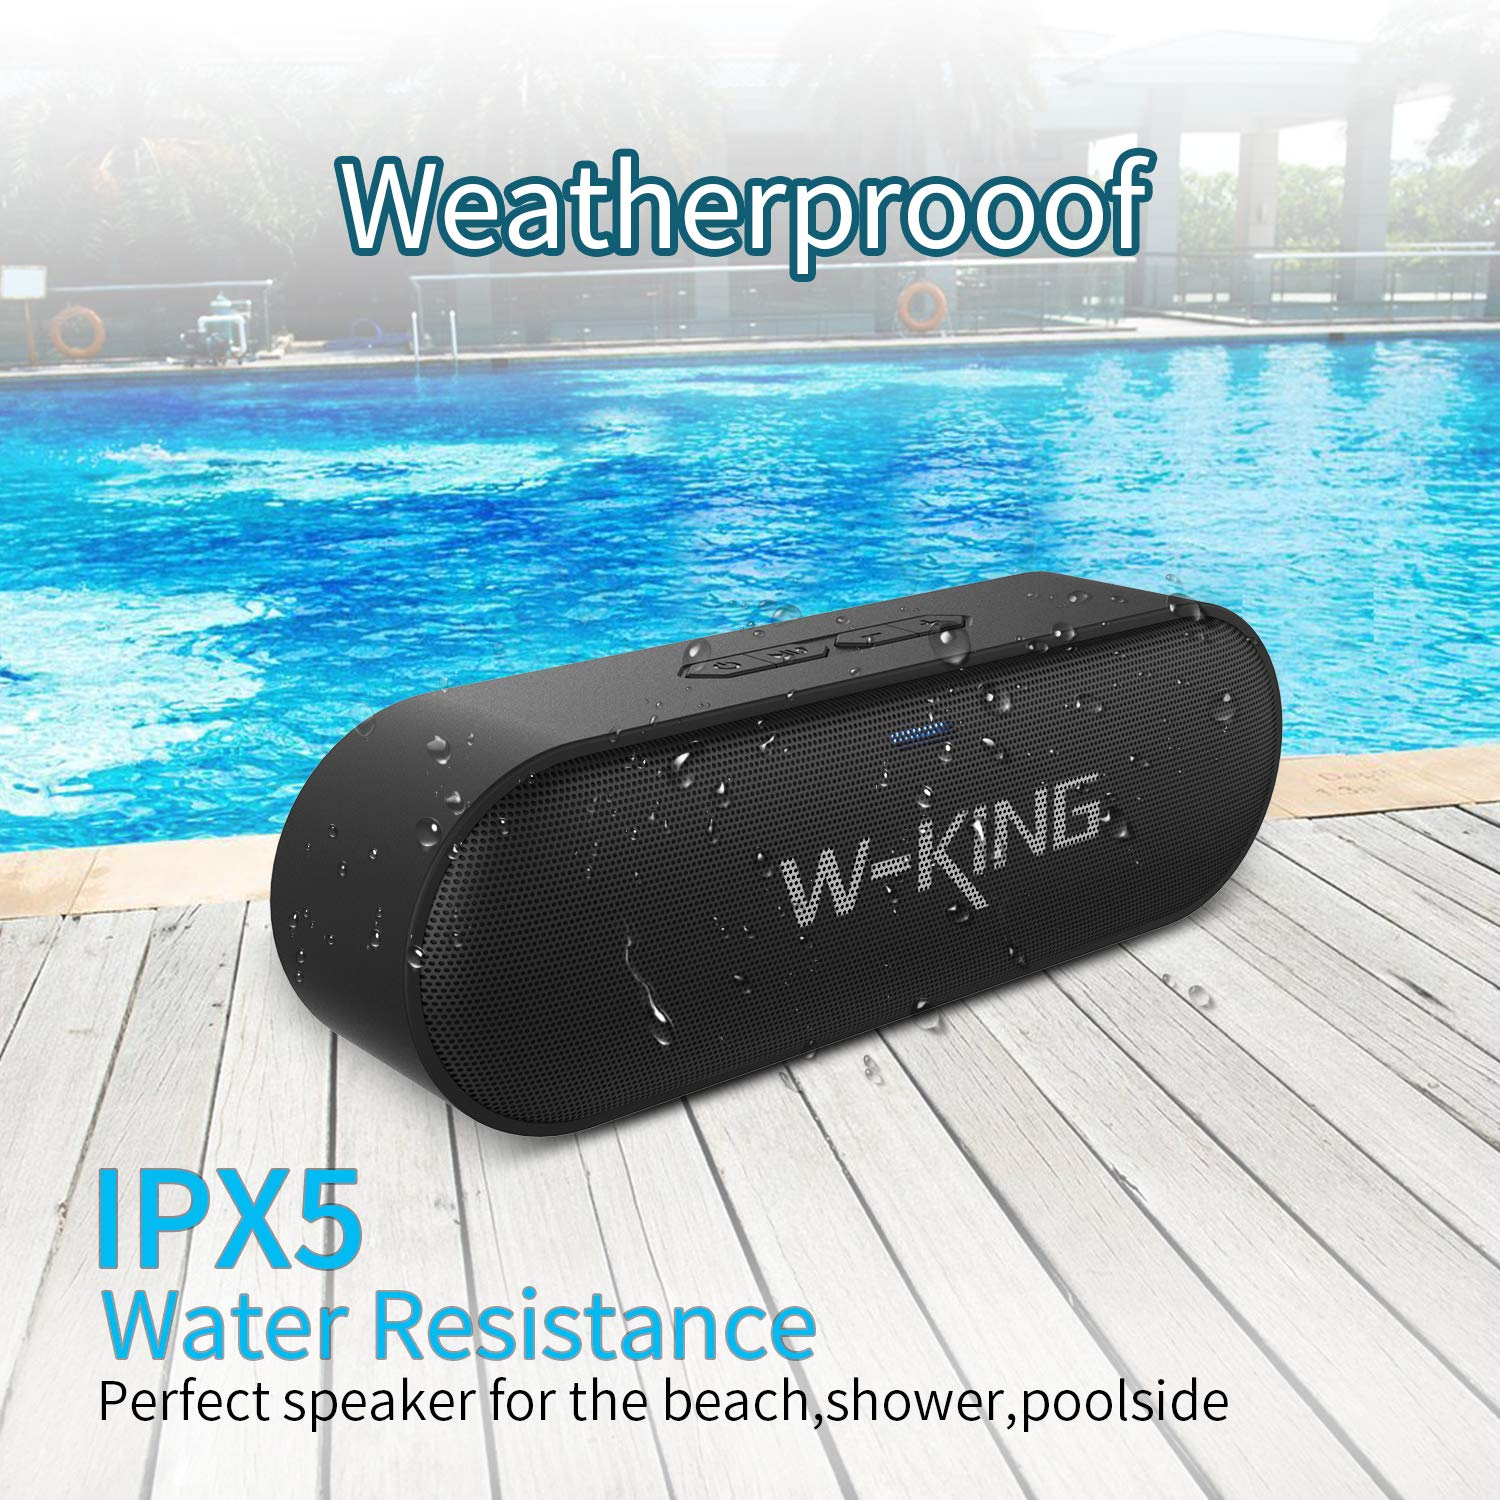 W-KING Bluetooth Speakers, 6W Portable Wireless Bluetooth Speaker with Rich Bass Loud Dual Stereo Sound IPX5 Waterproof Outdoor Speaker, Built-in Mic Perfect for Beach, Party, Dance (Black)